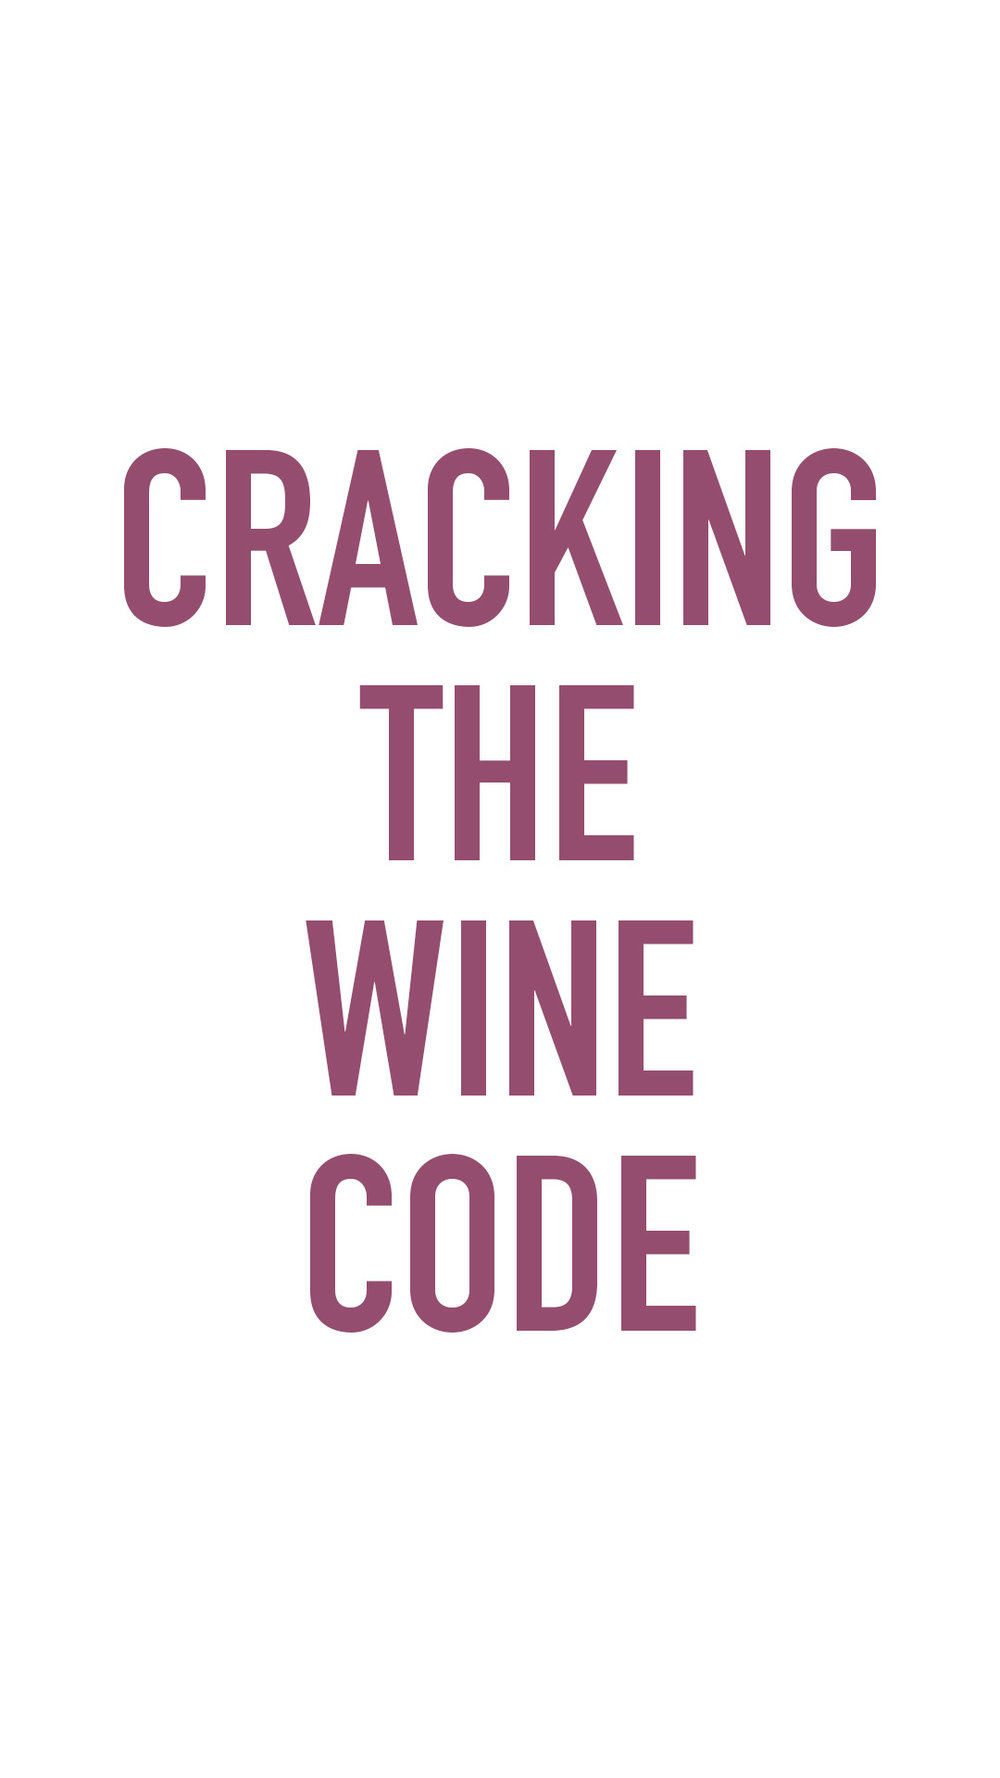 cracking the wine code